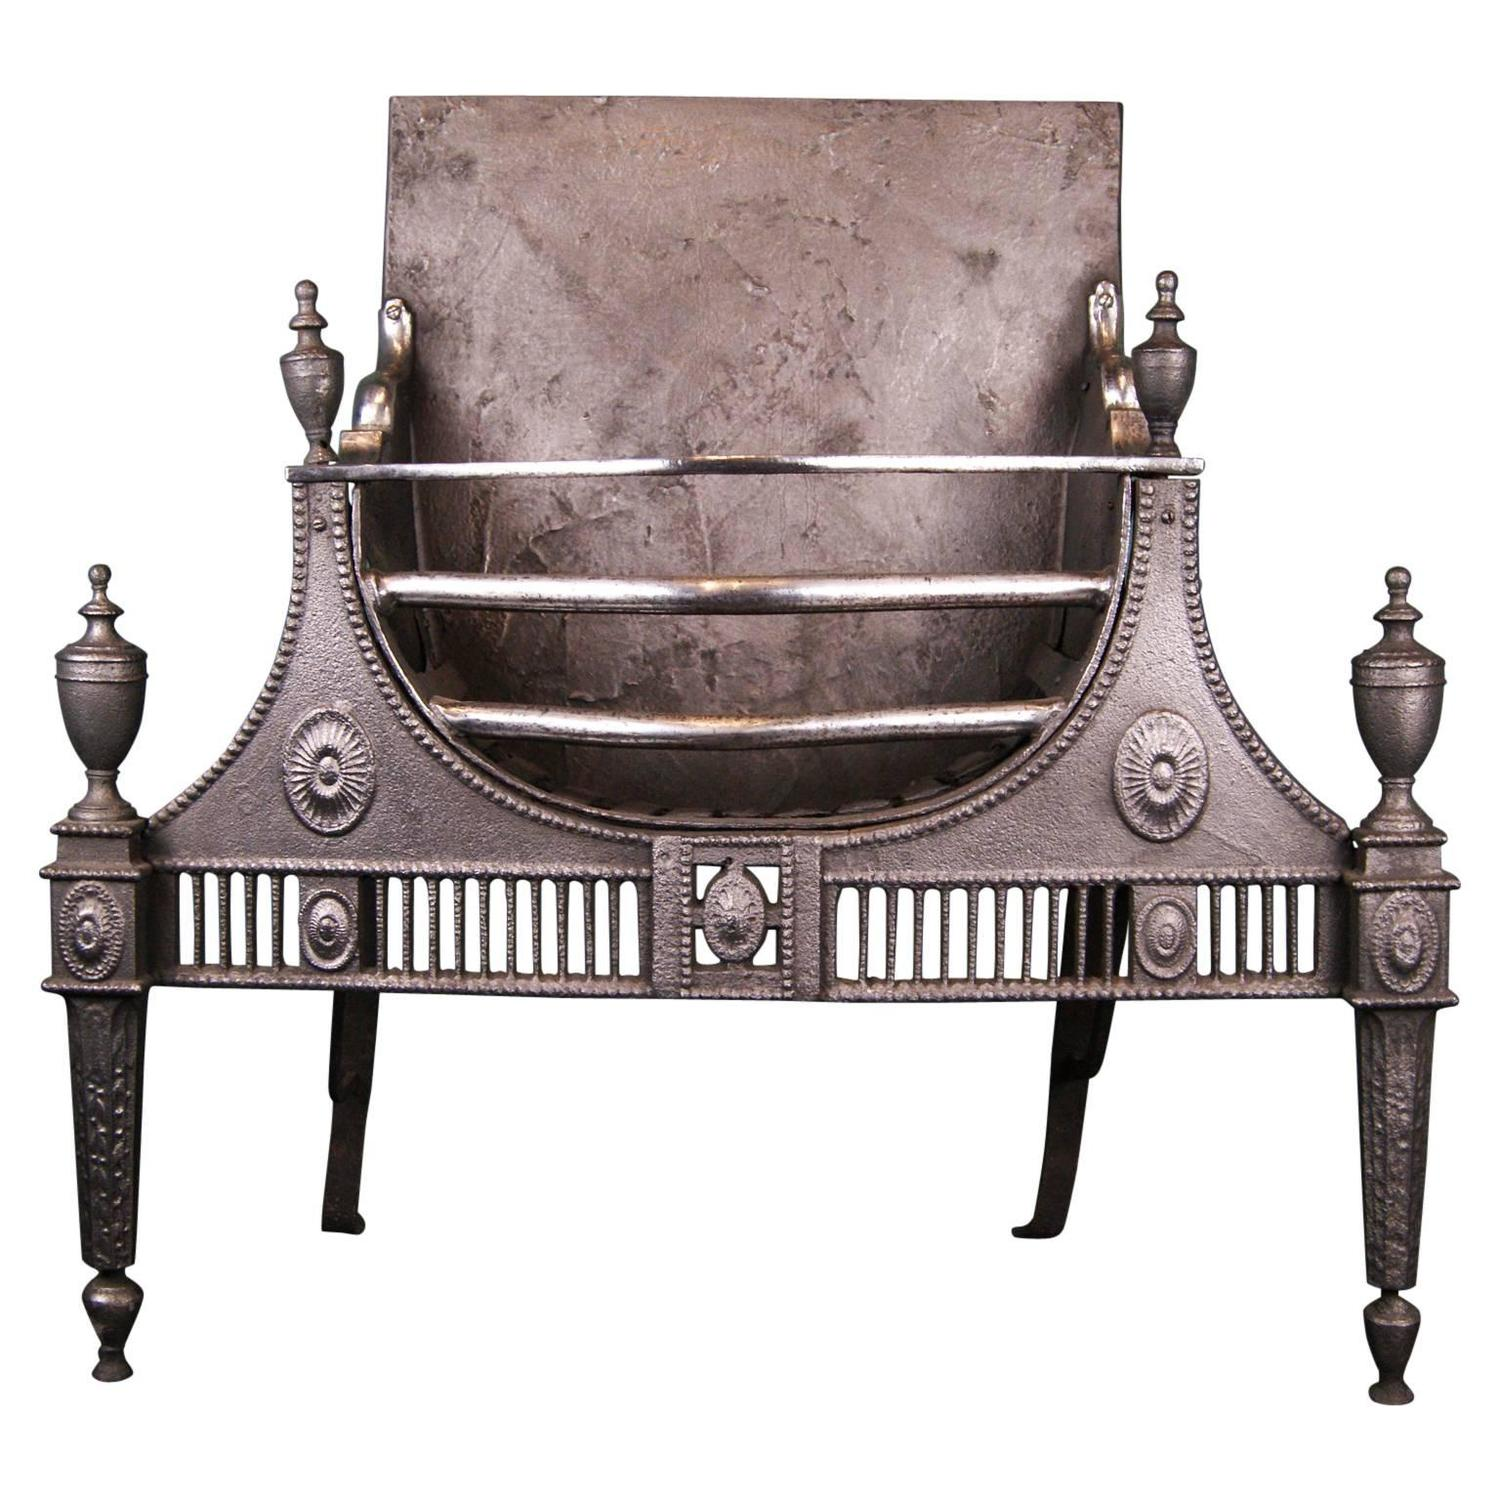 18th Century Cast And Wrought Iron Fireplace Fire Grate For Sale At 1stdibs